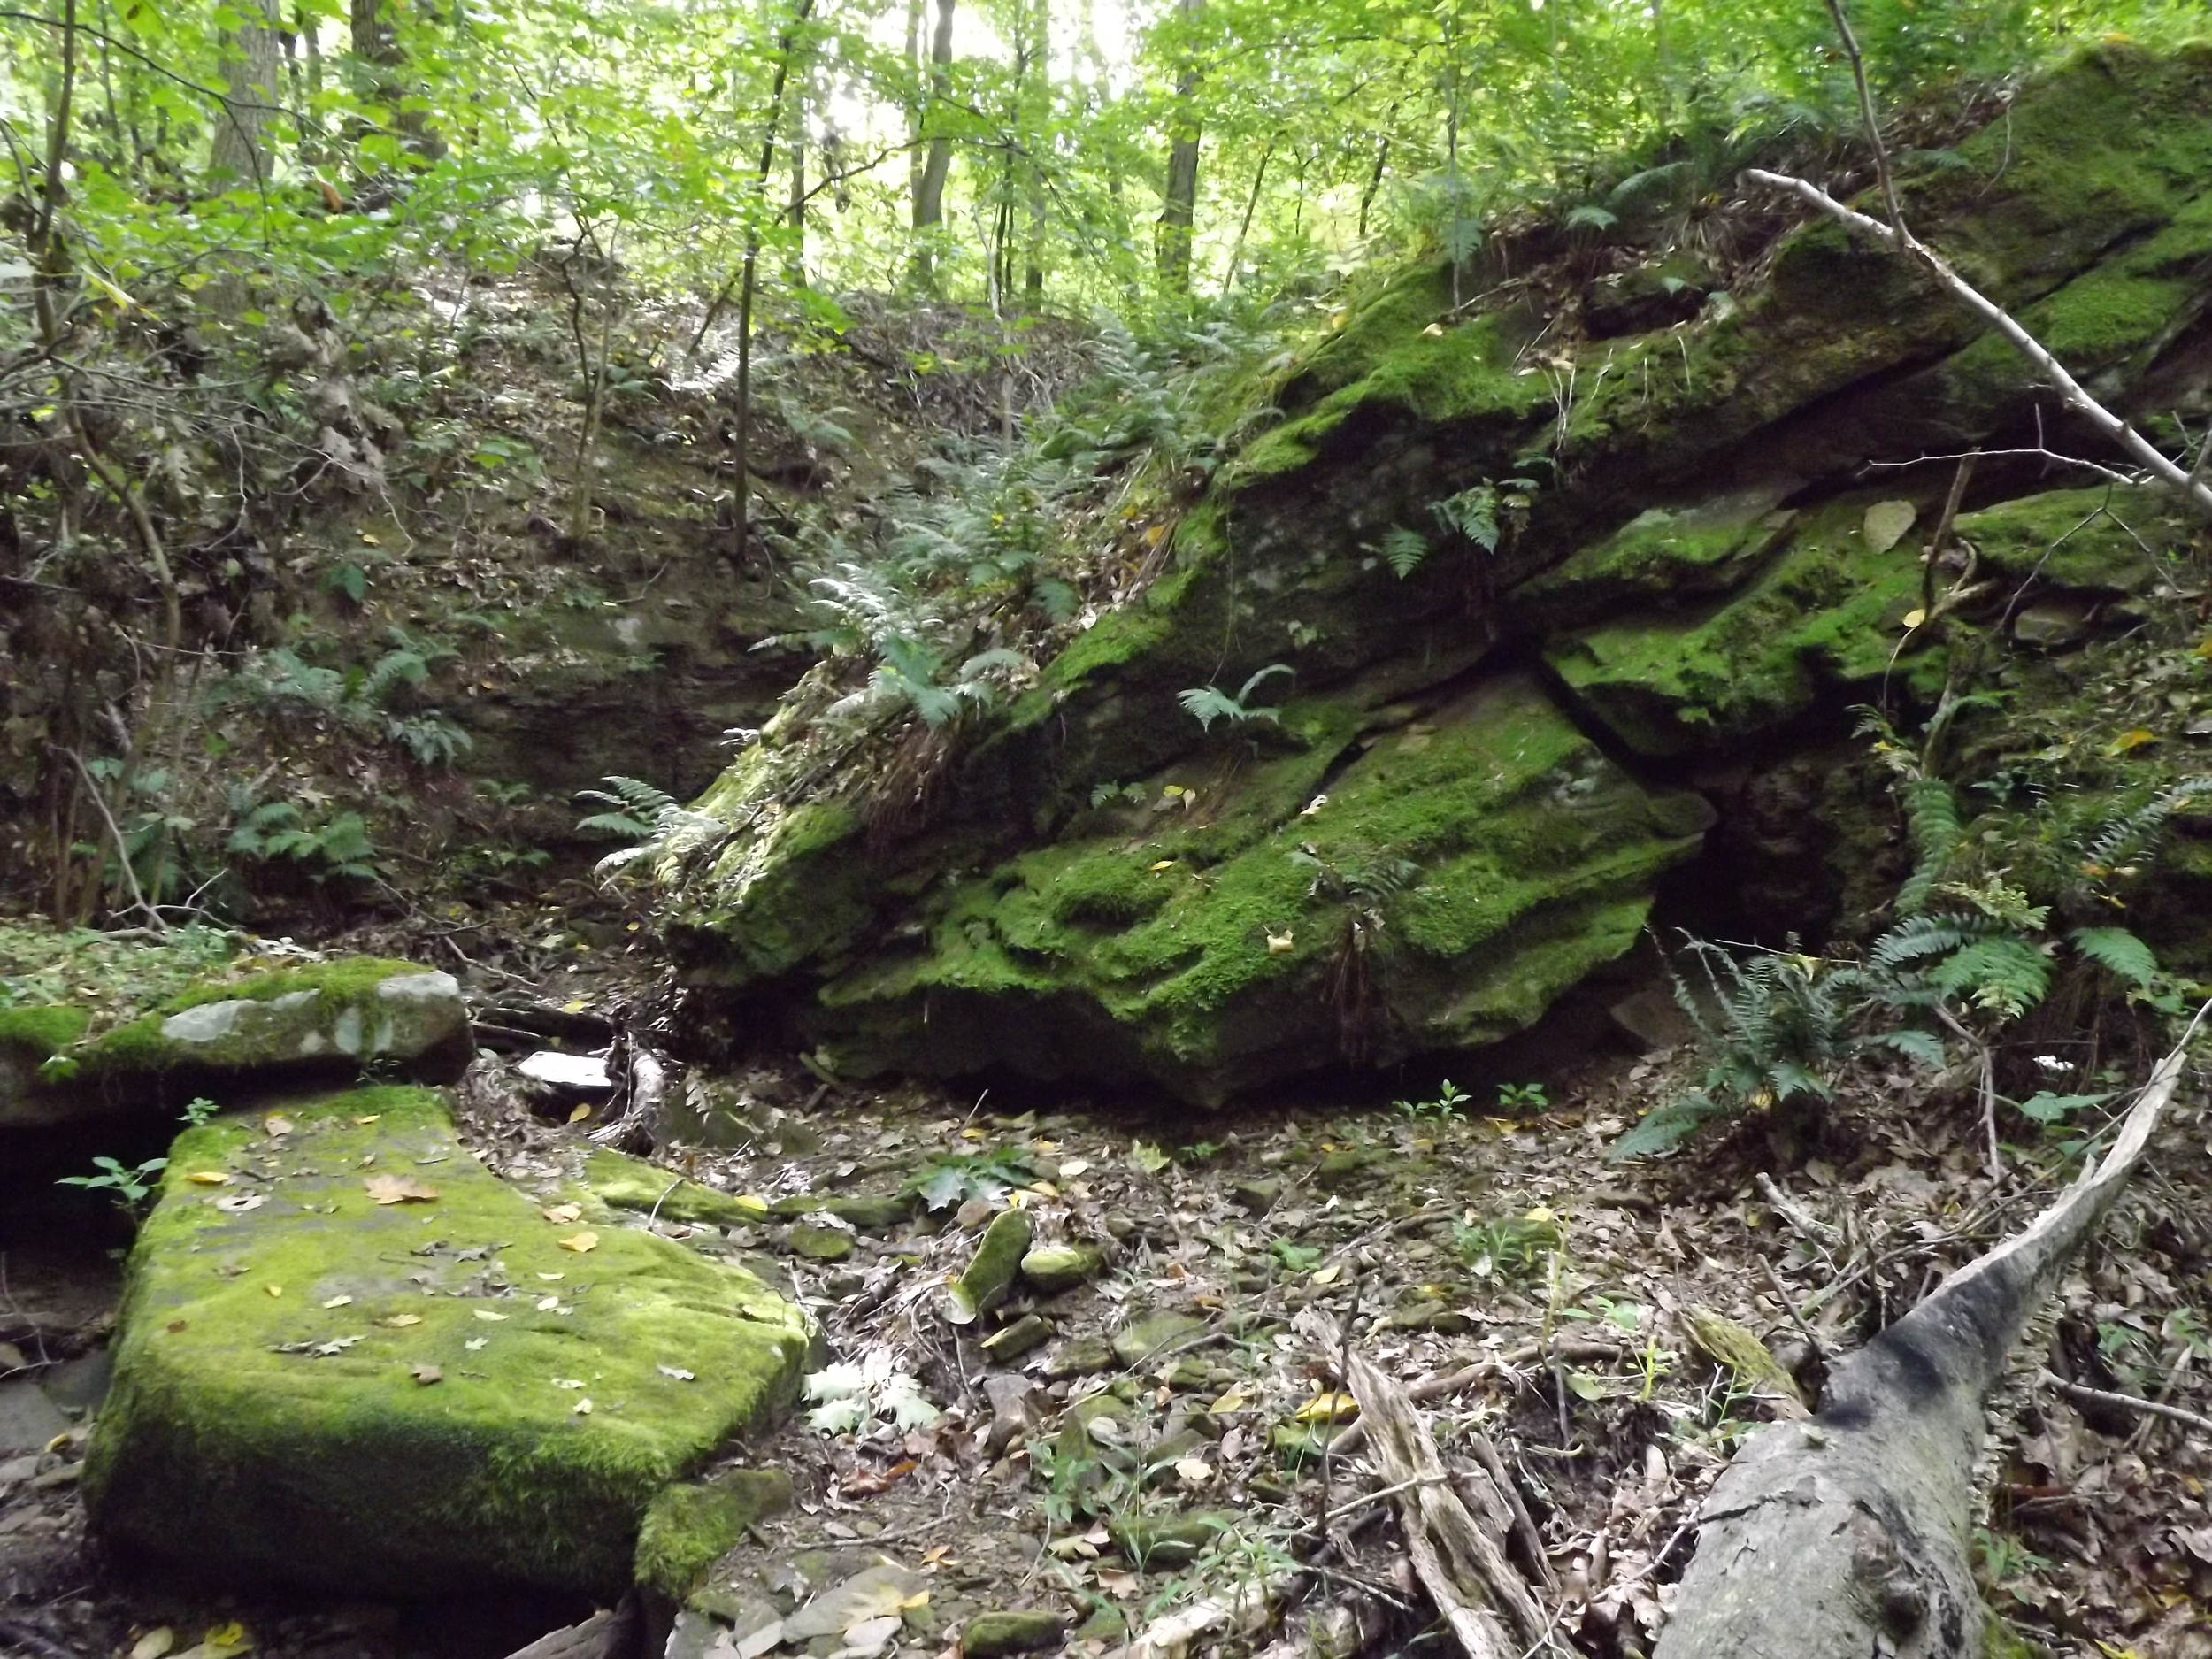 Big Boulder -  This rather large boulder sits at the junction of two very small tributaries of Little Sewickley Creek.  Both tributaries are steep and narrow with a lot of waterfalls and cascades along their lengths, so getting there is not terribly easy, but it's worth it.